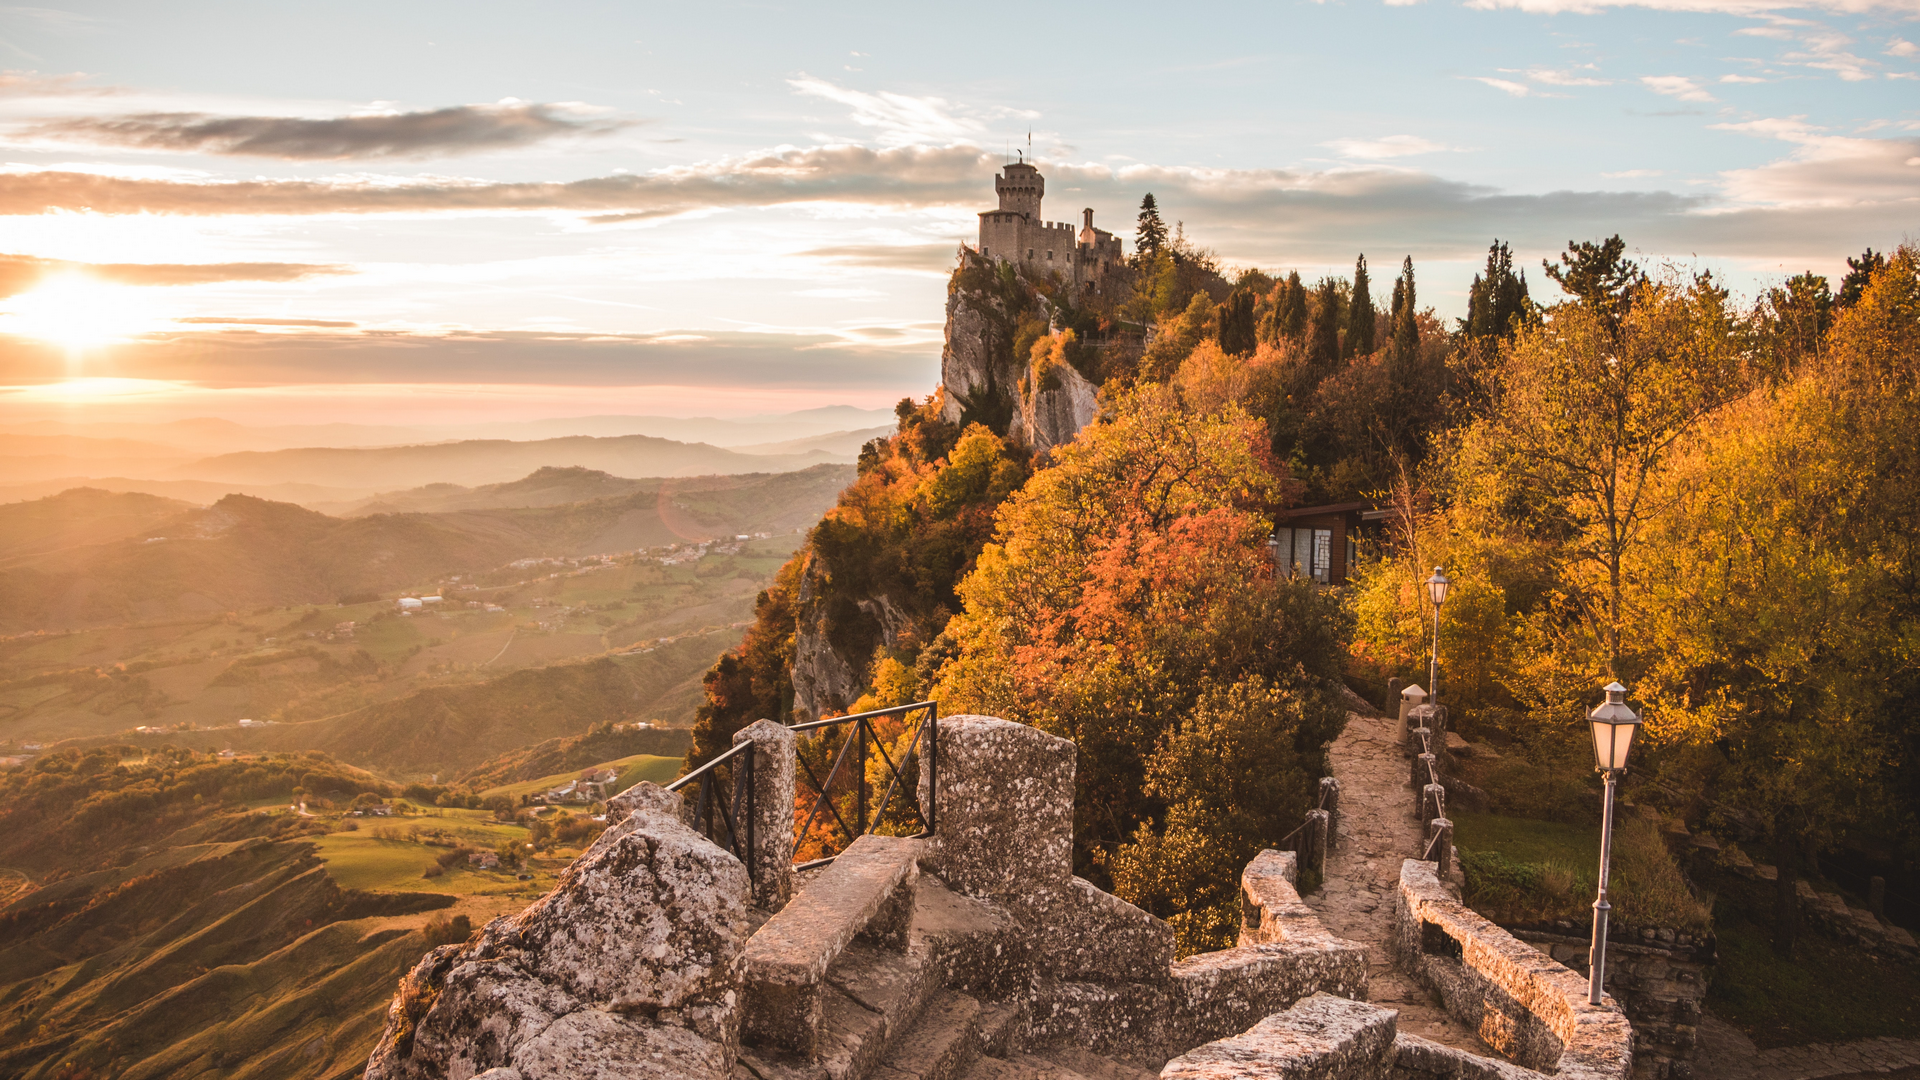 A view in San Marino